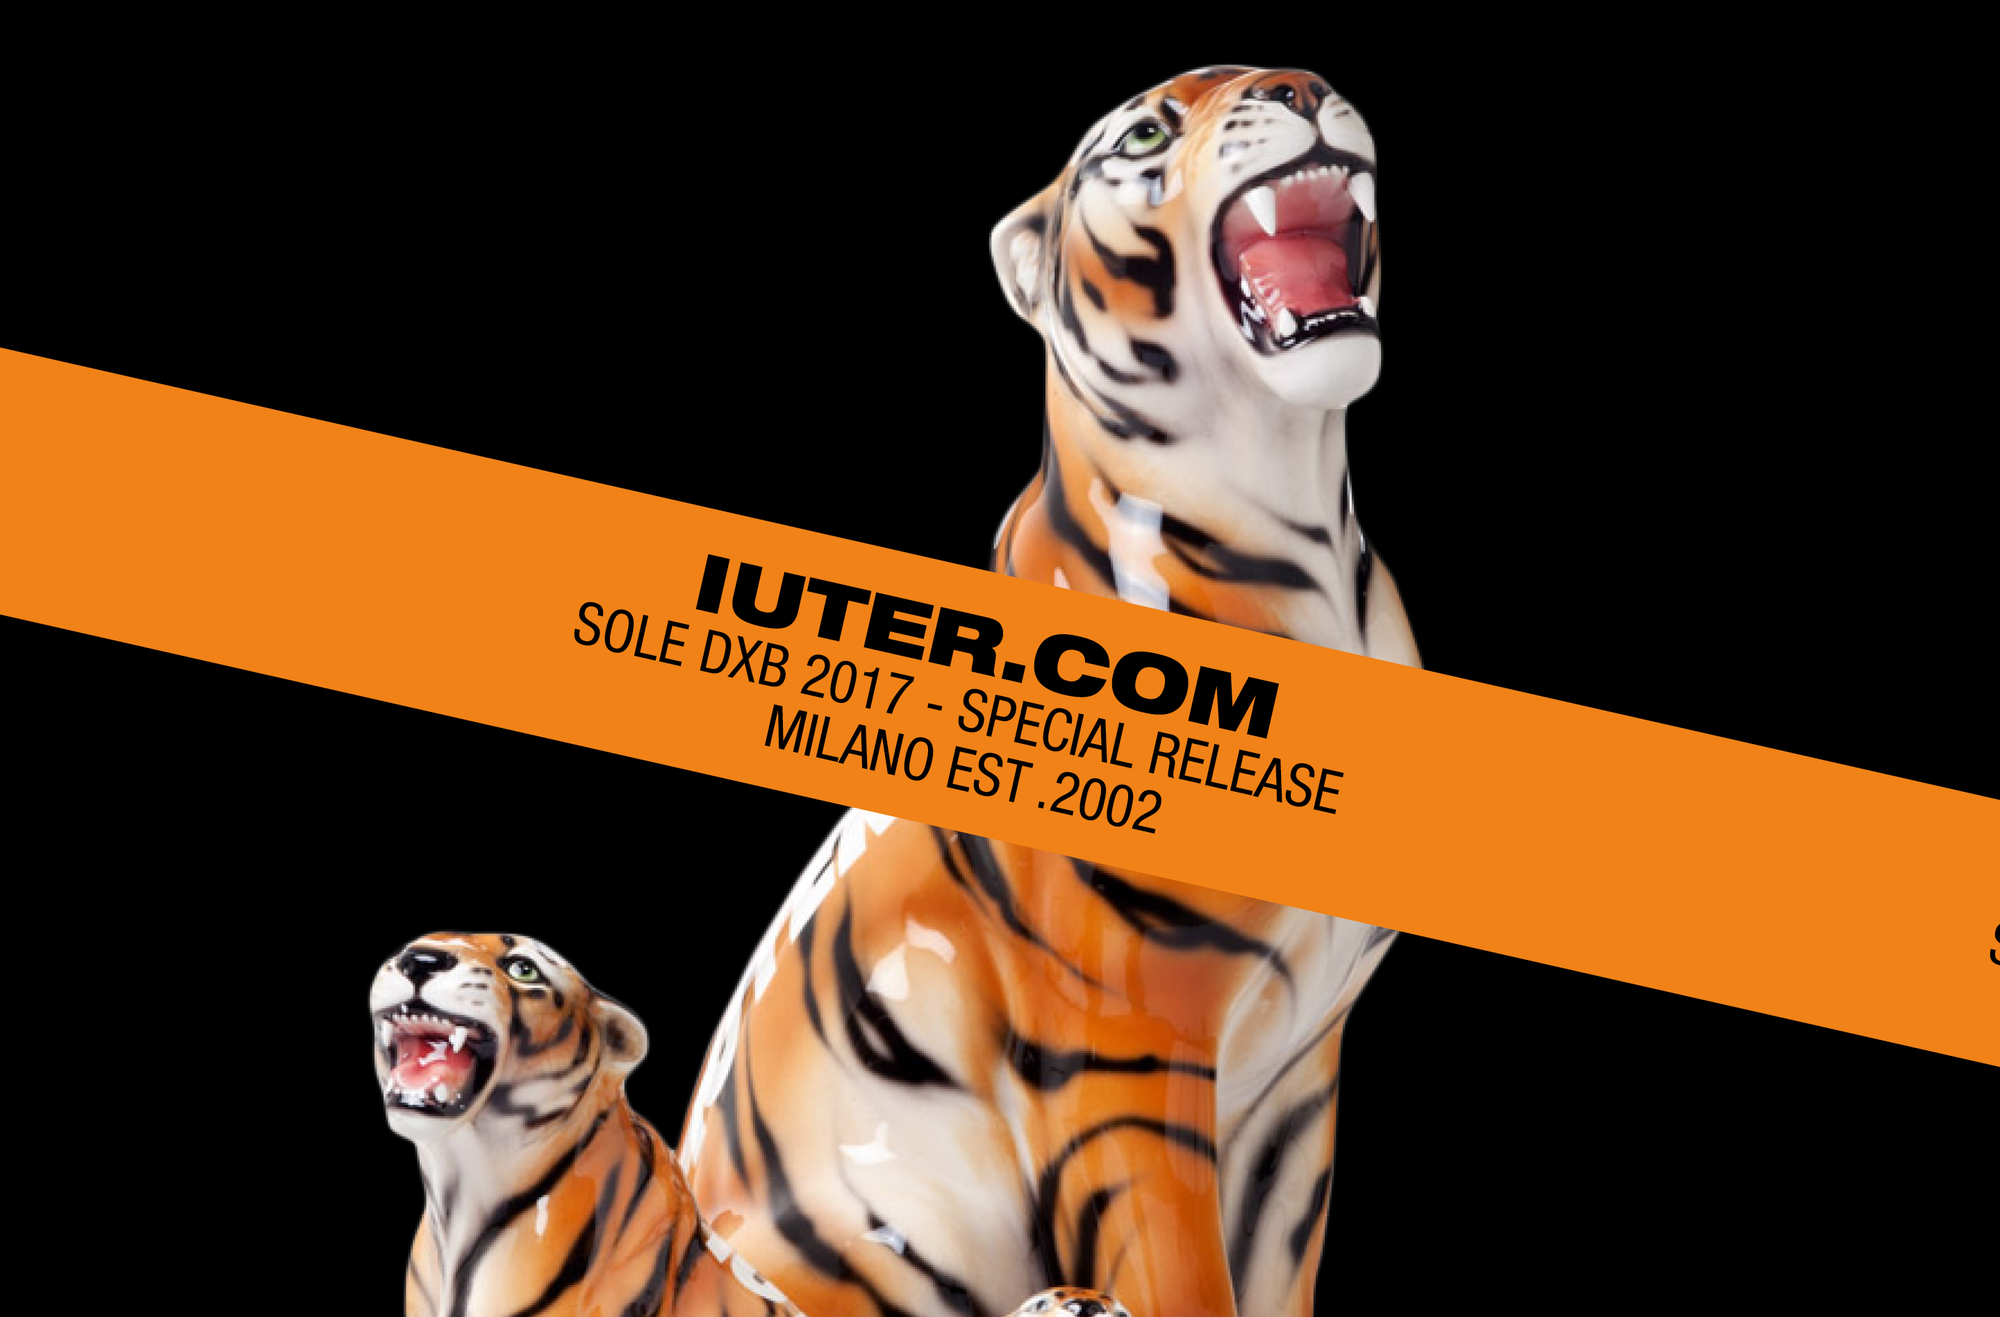 IUTER SPECIAL TIGER PACK FOR SOLE DXB